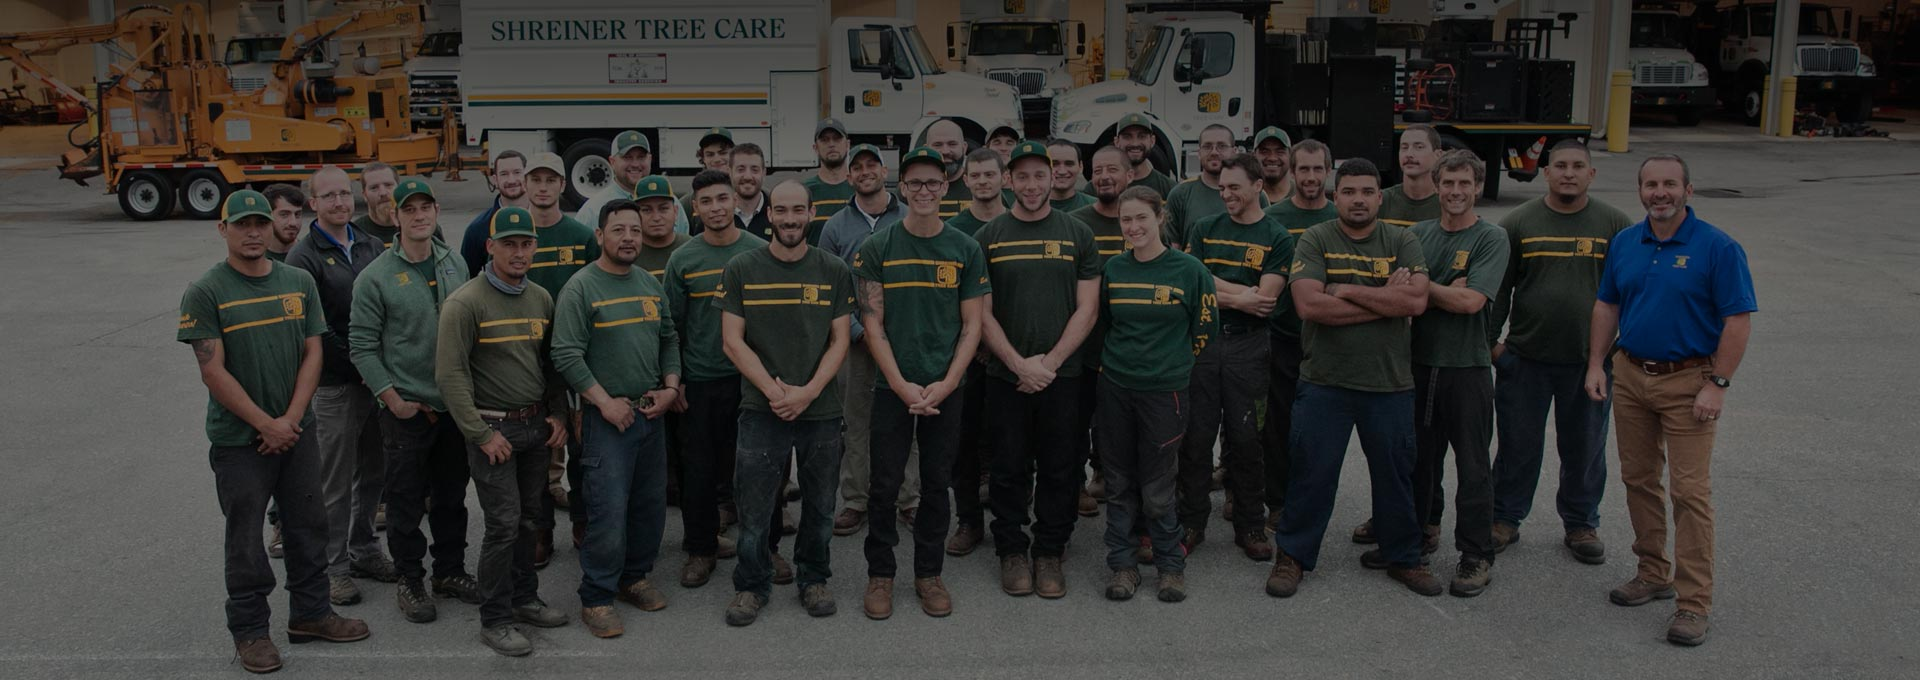 Shreiner Tree Care team picture of certified arborists